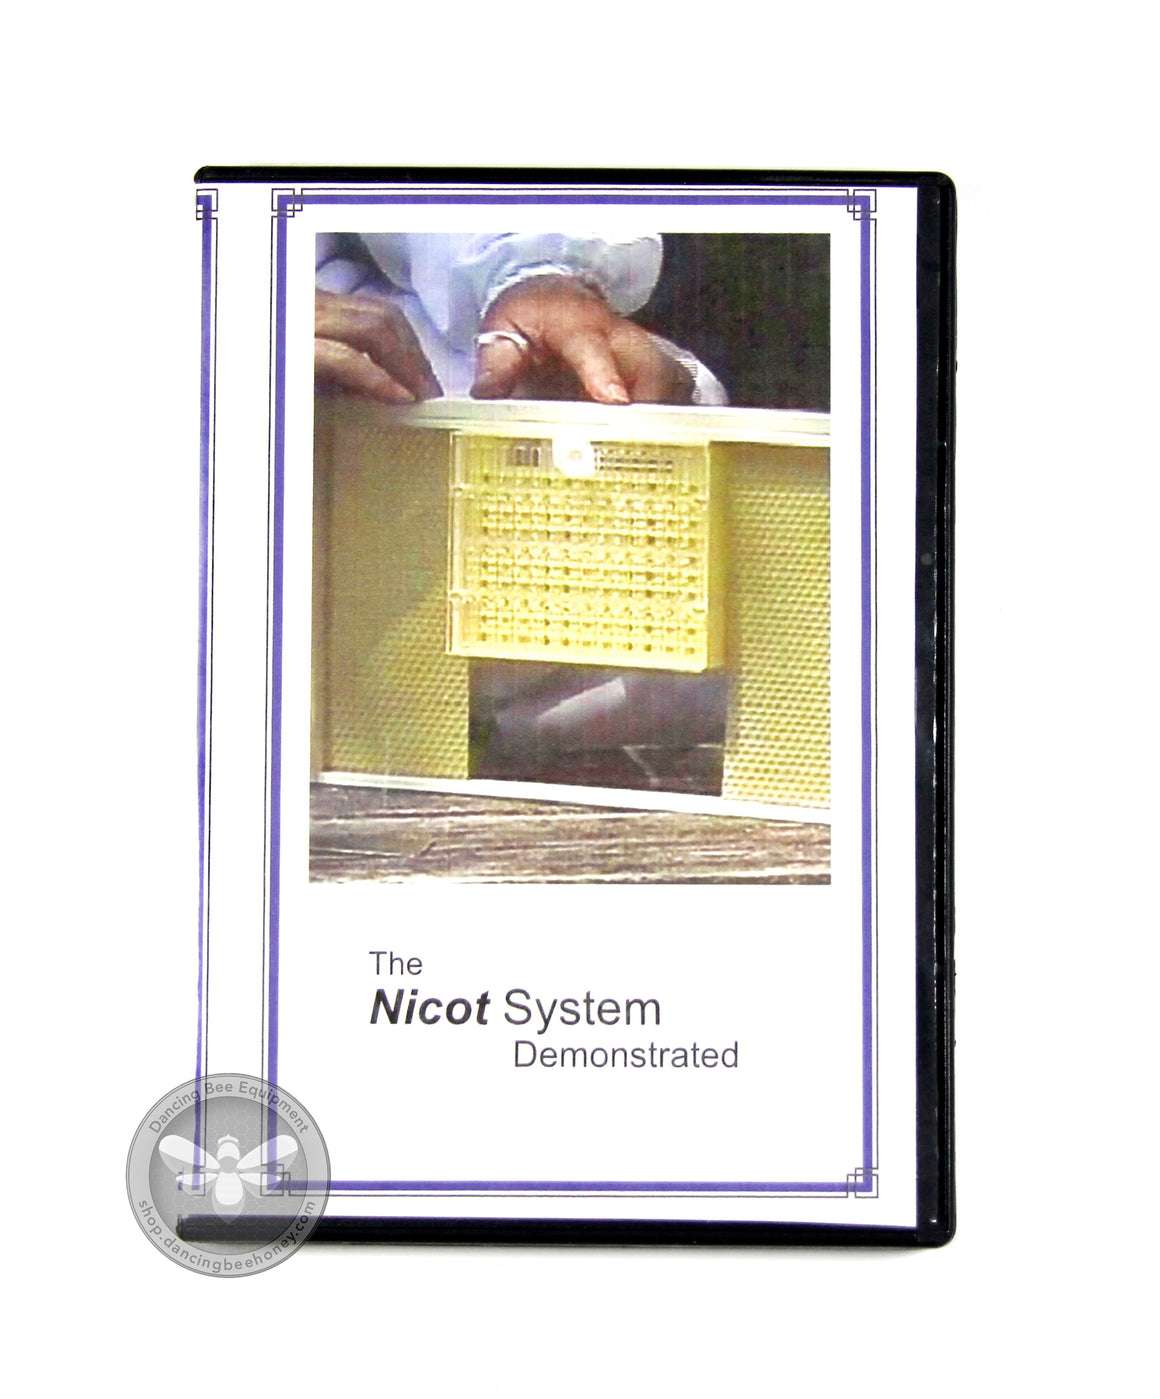 The Nicot System <br> Demonstrated <br> DVD